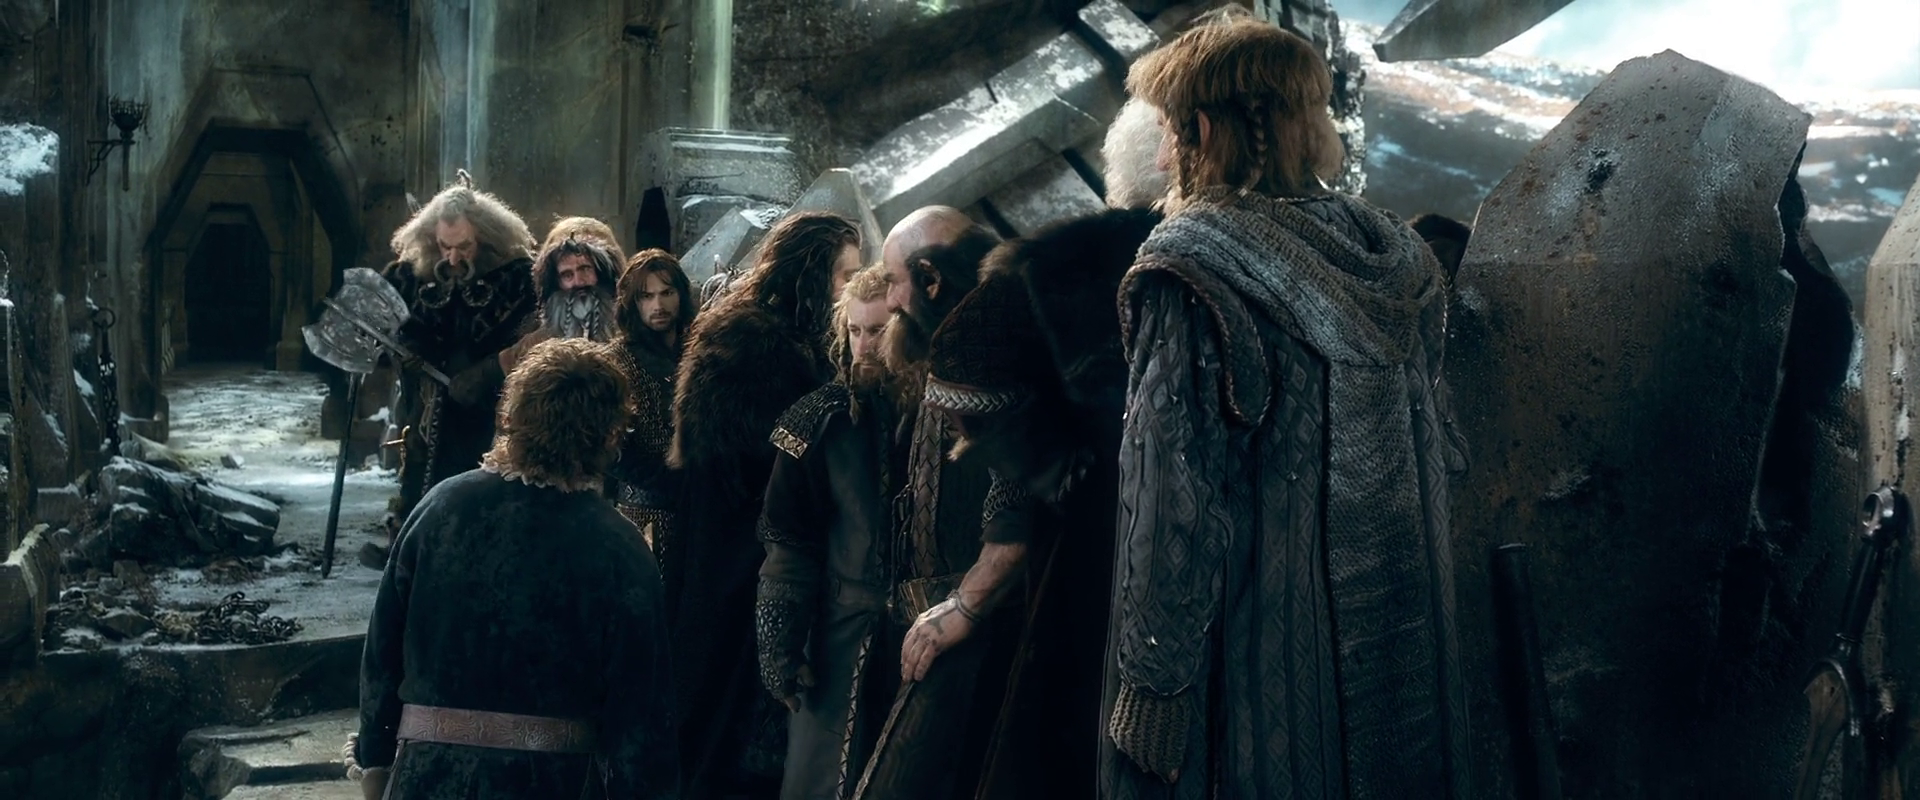 the hobbit the battle of the five armies 1080p download